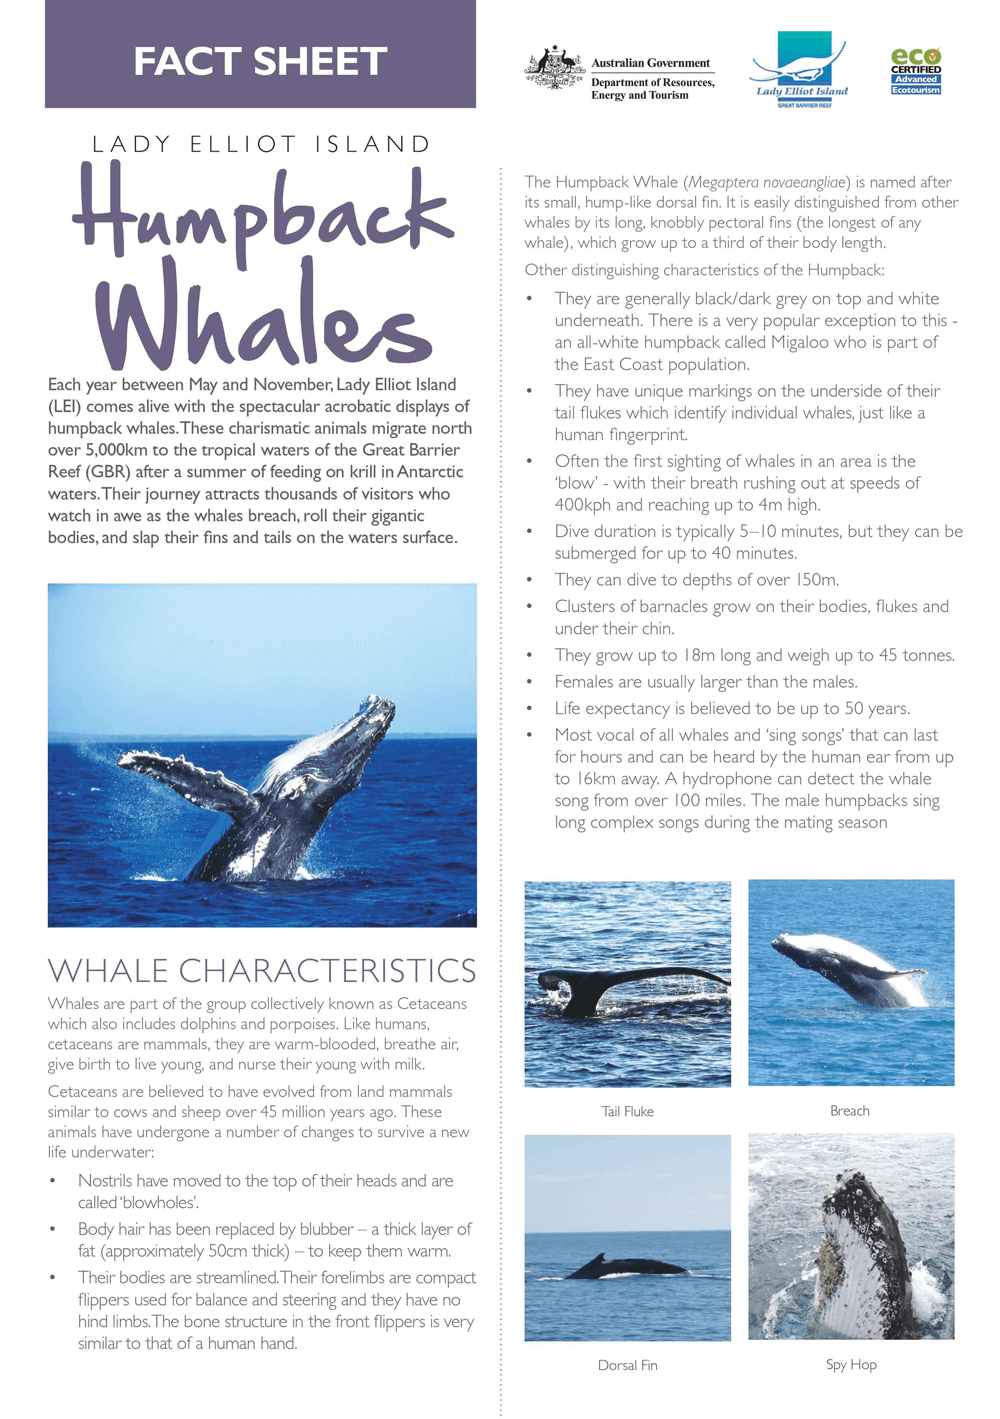 whales.png